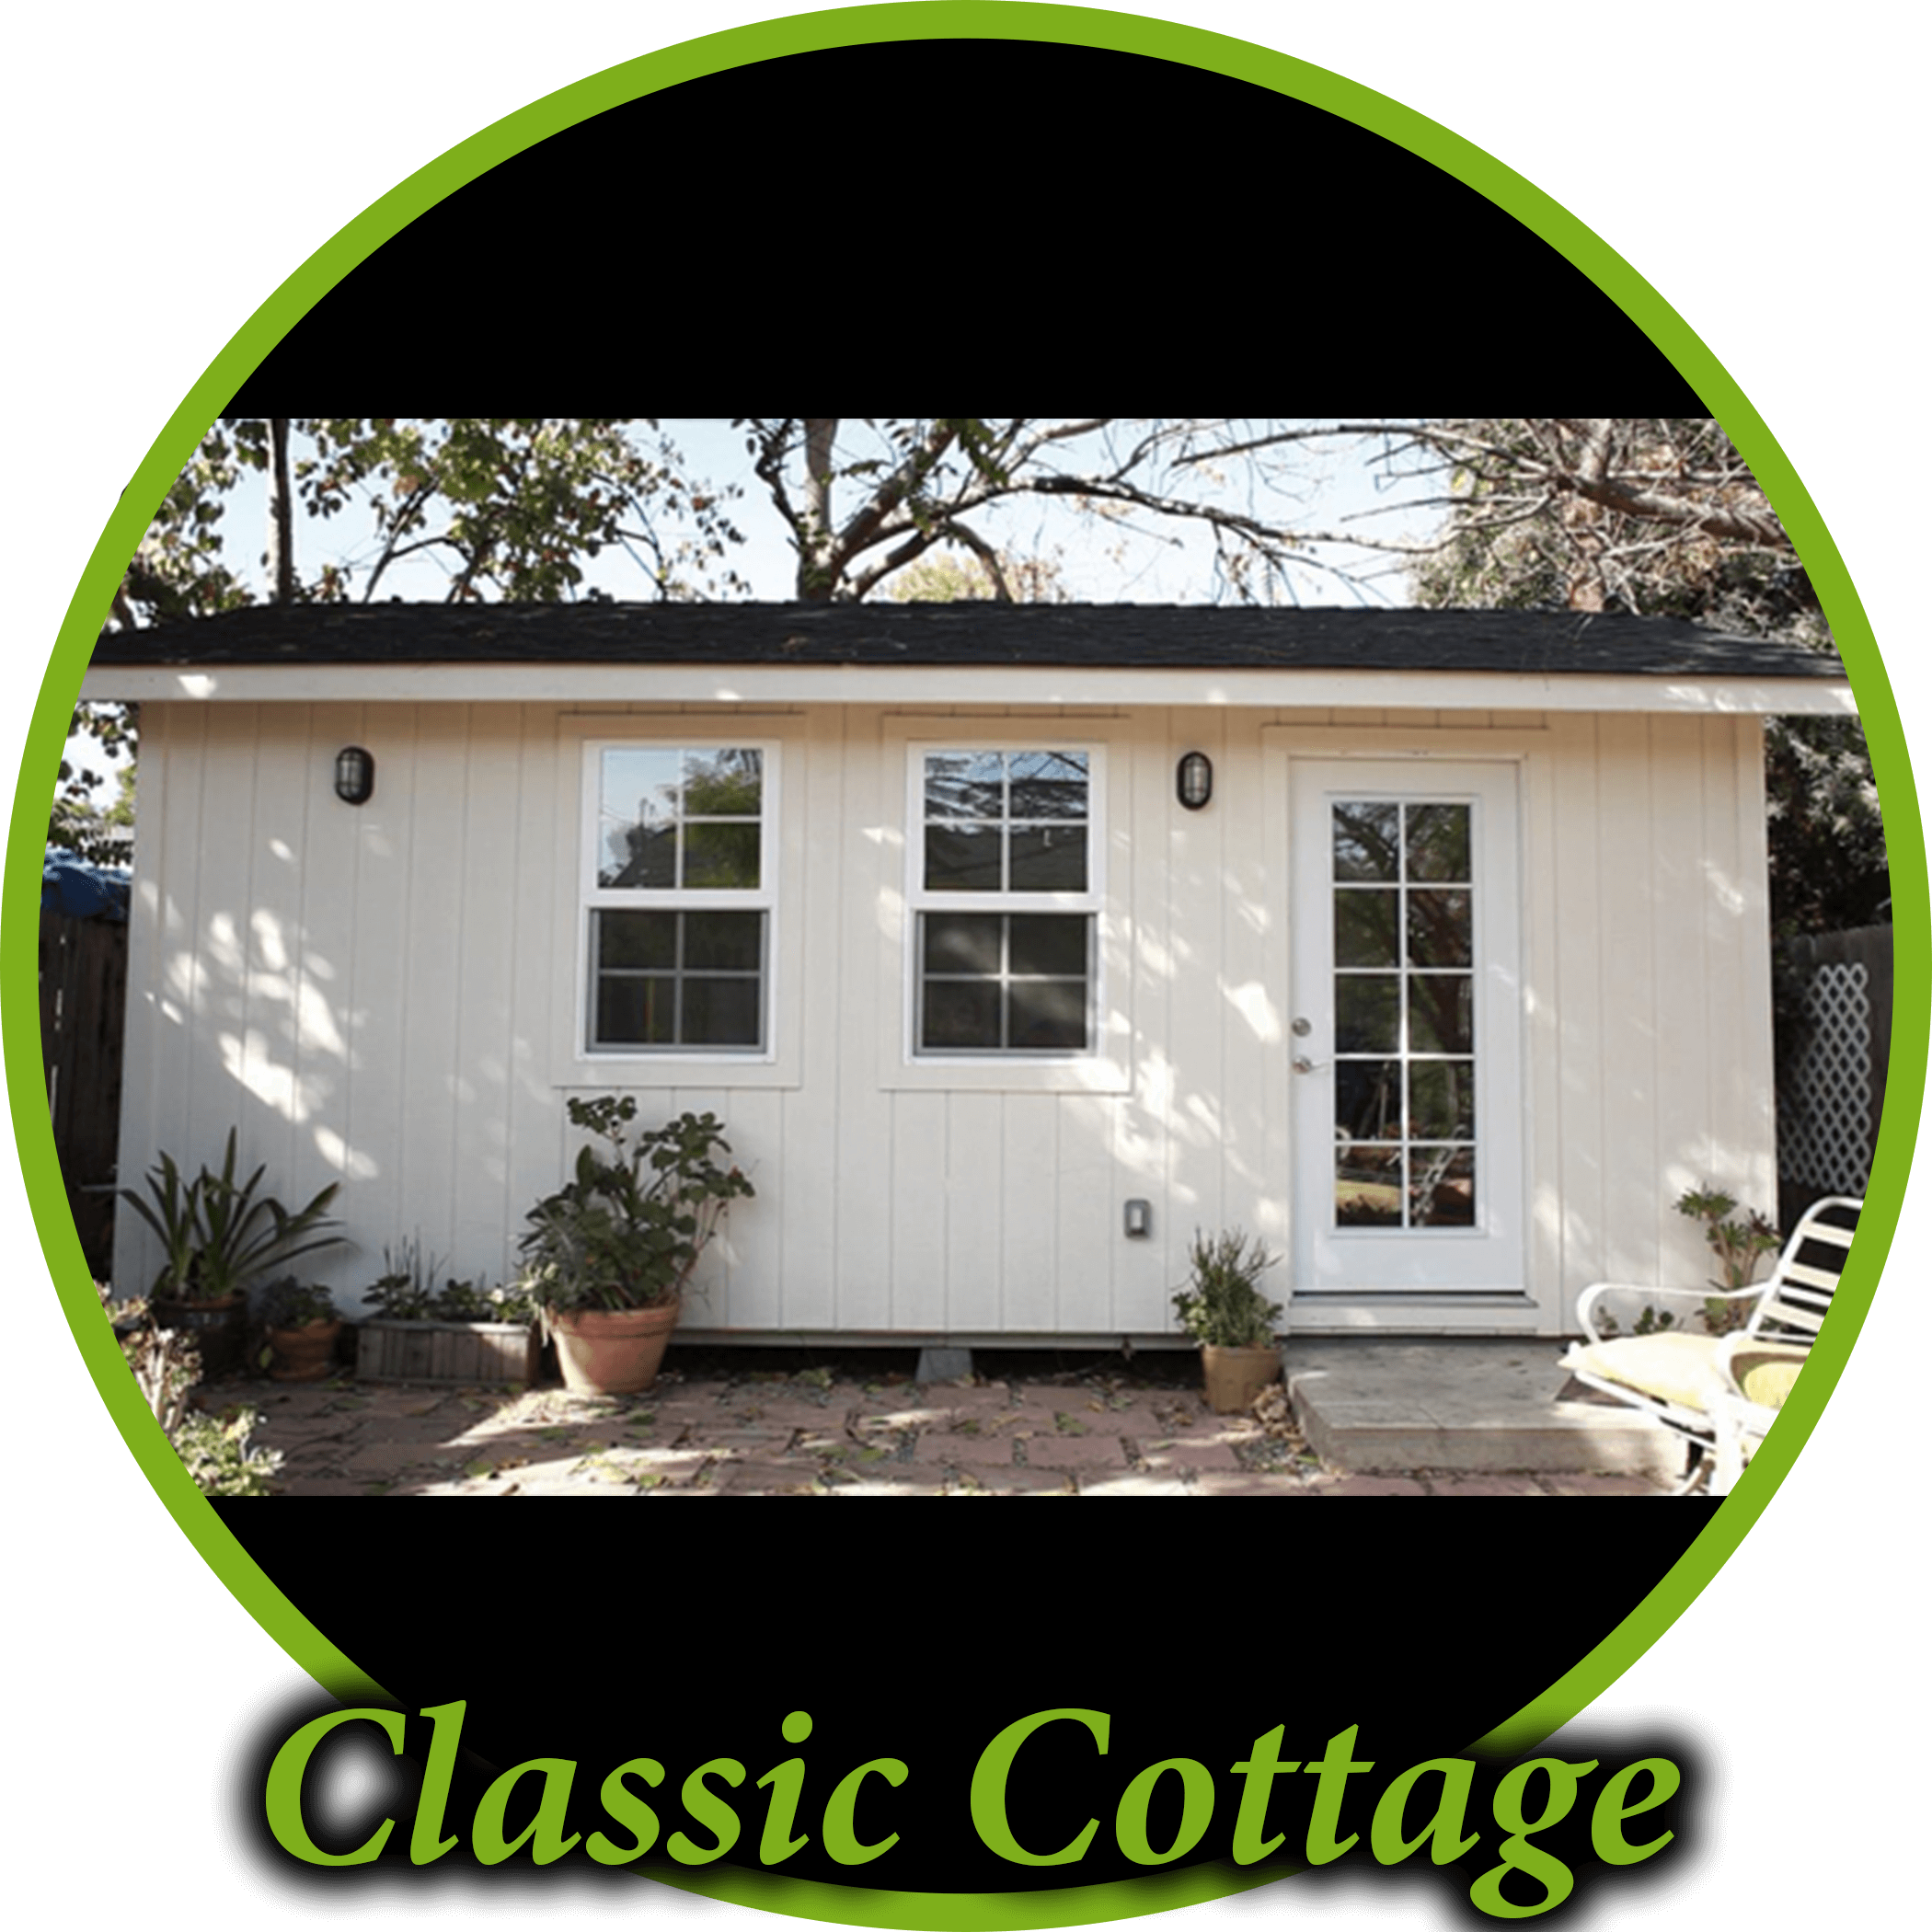 Classic Cottage circle (optimized).png